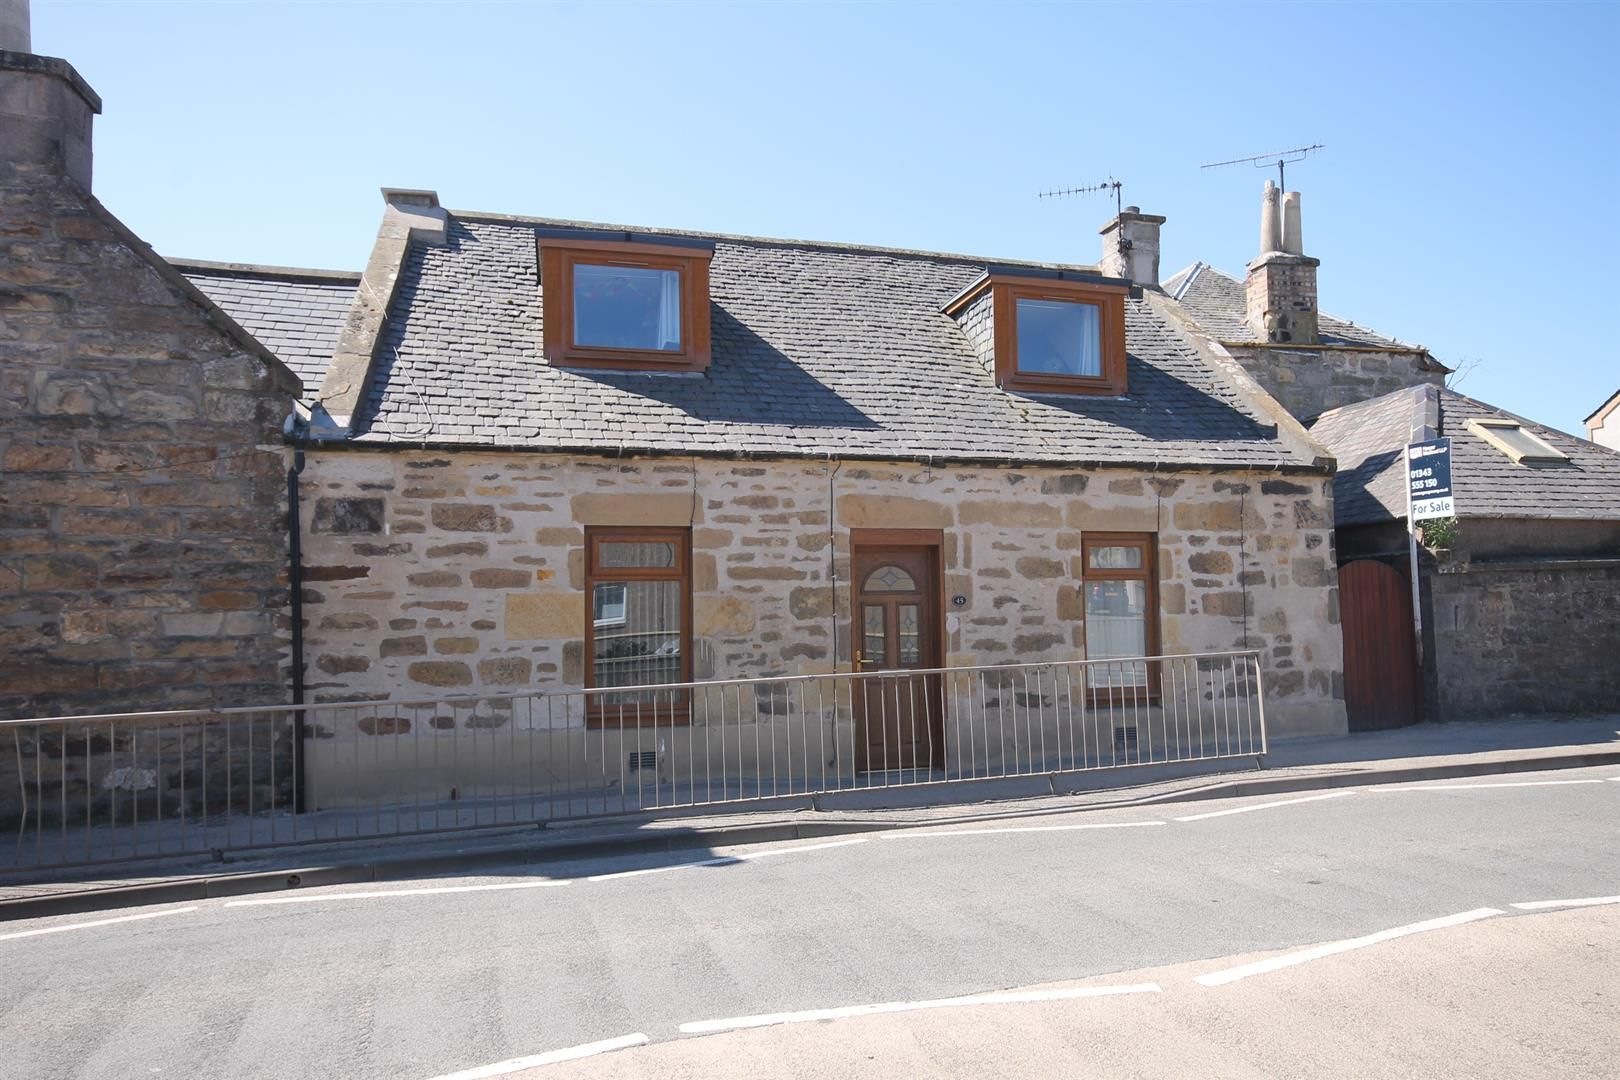 Property photo 1 of 15. 45 South College Street, Elgin